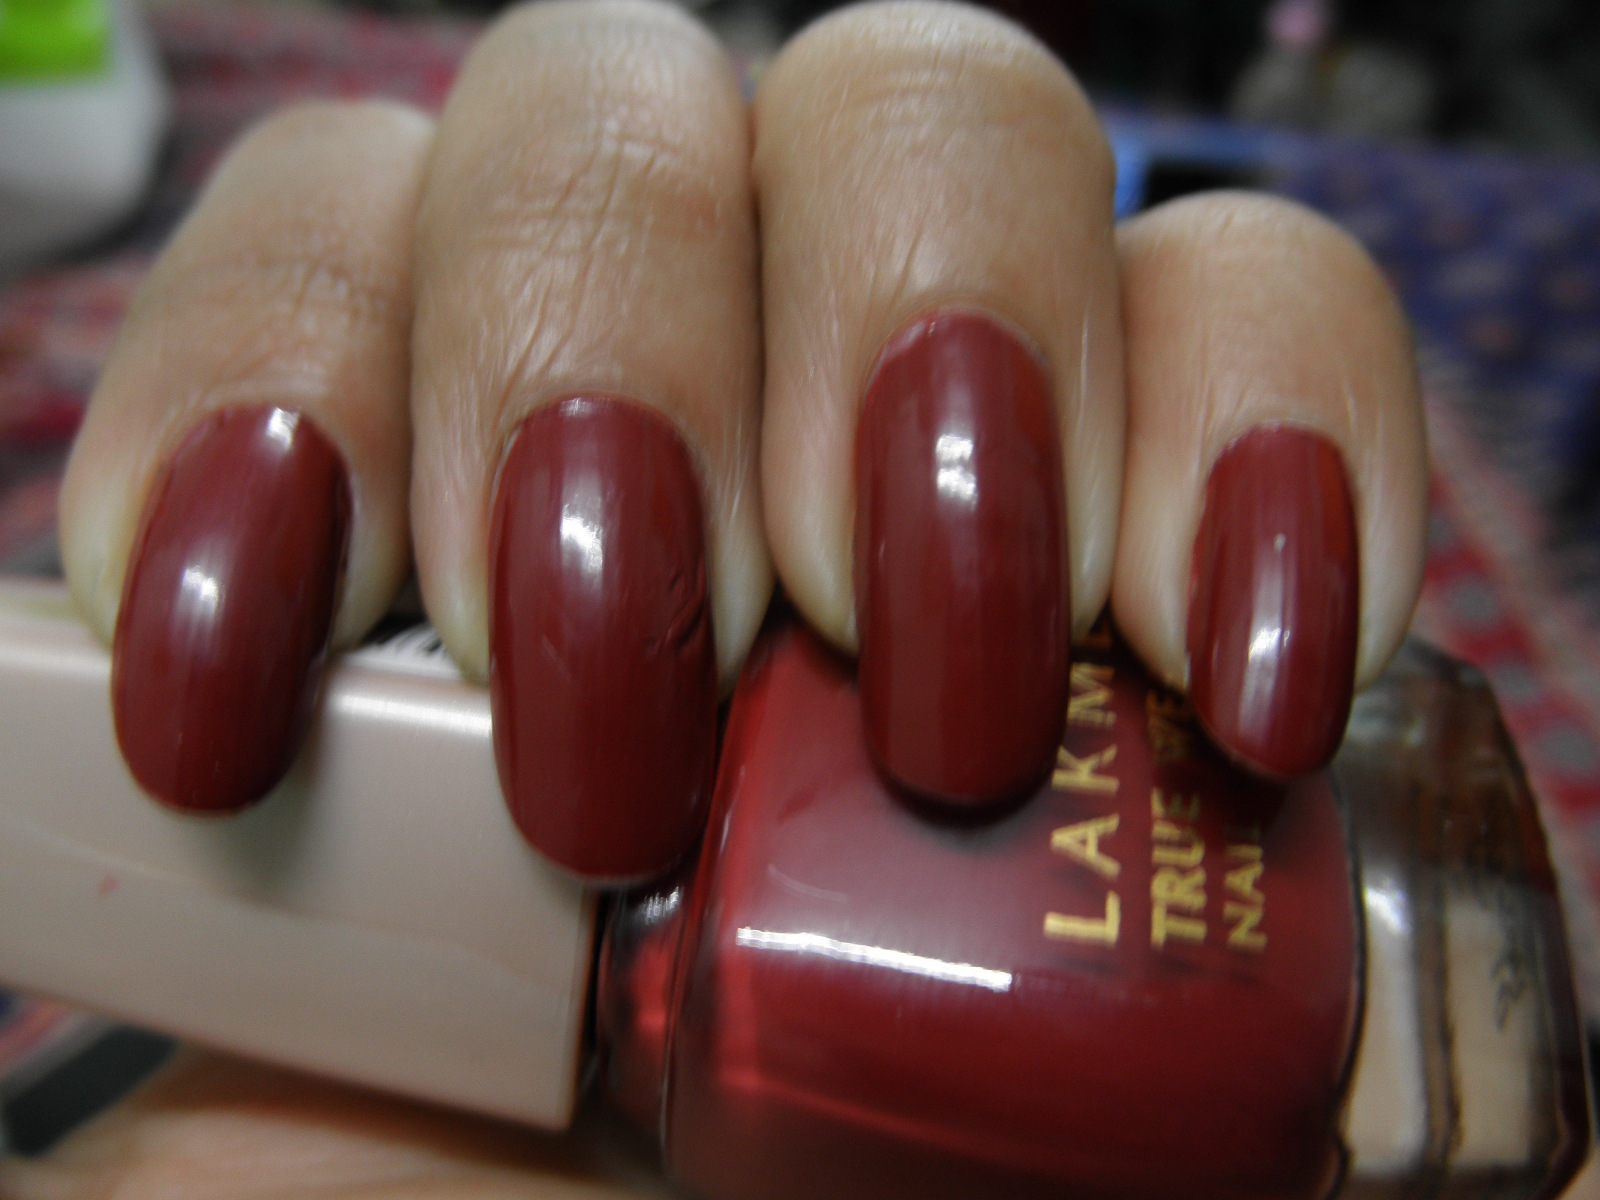 Lakme True Wear nail color #D416 Review + NOTD | Corallista Makeup Blog